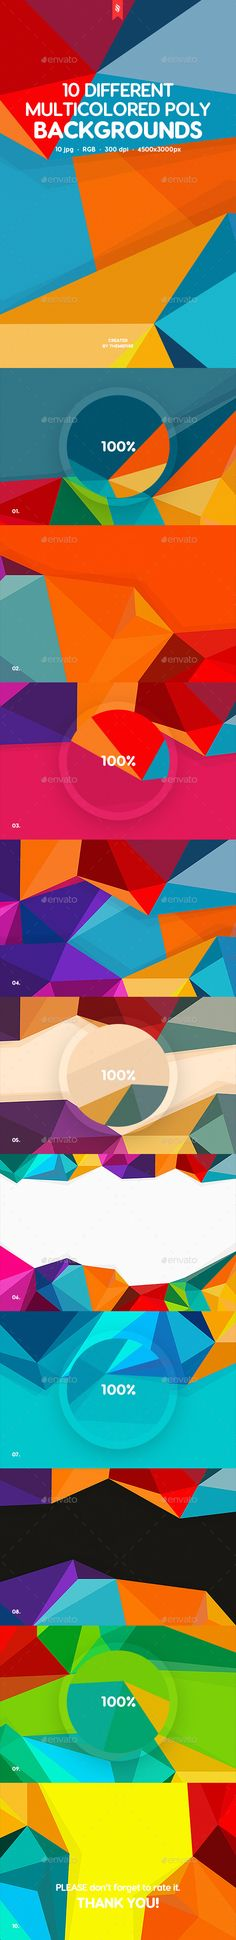 10 Different Multicolored Polygon Backgrounds